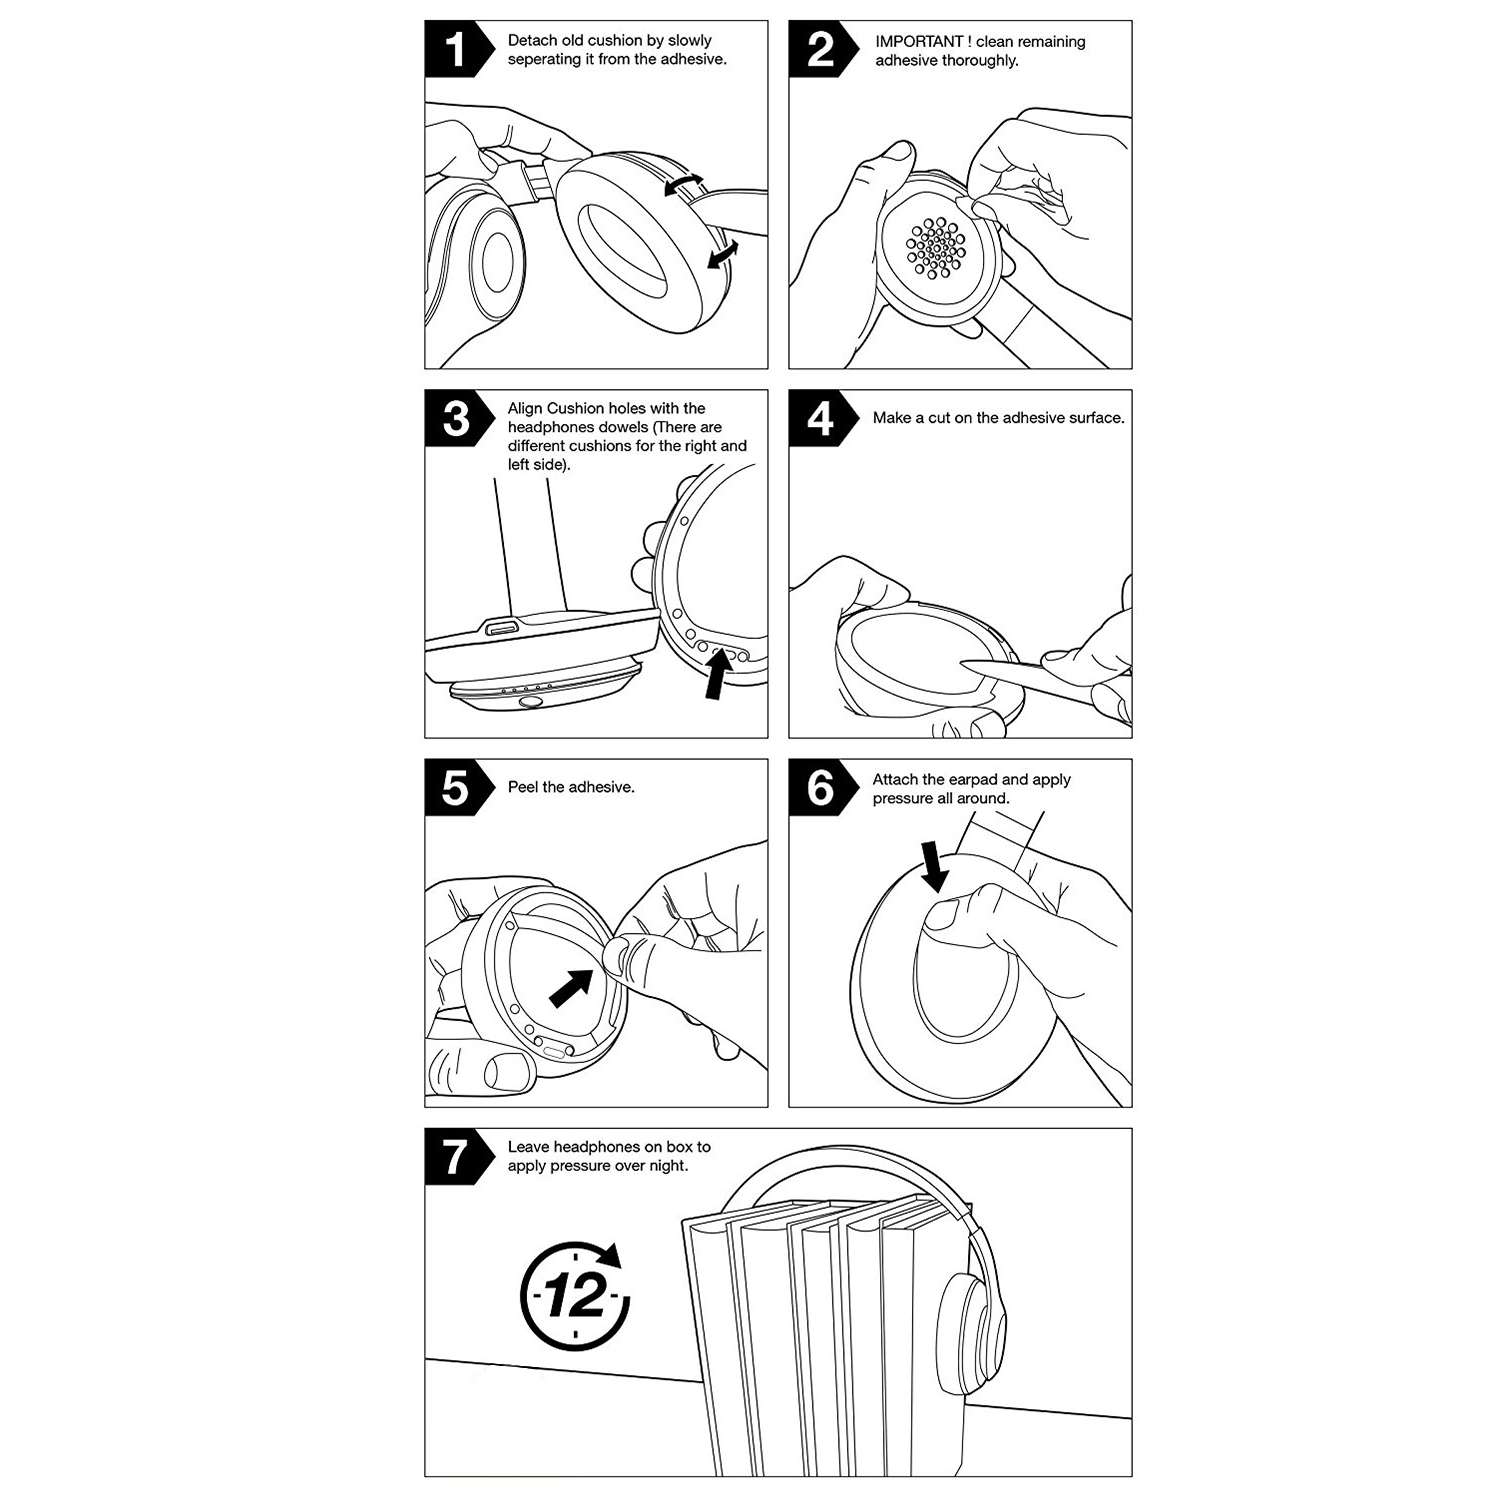 Full Wiring Diagram Beats By Dre Auto Electrical 2x Replacement Ear Pad Cushion For Dr Studio